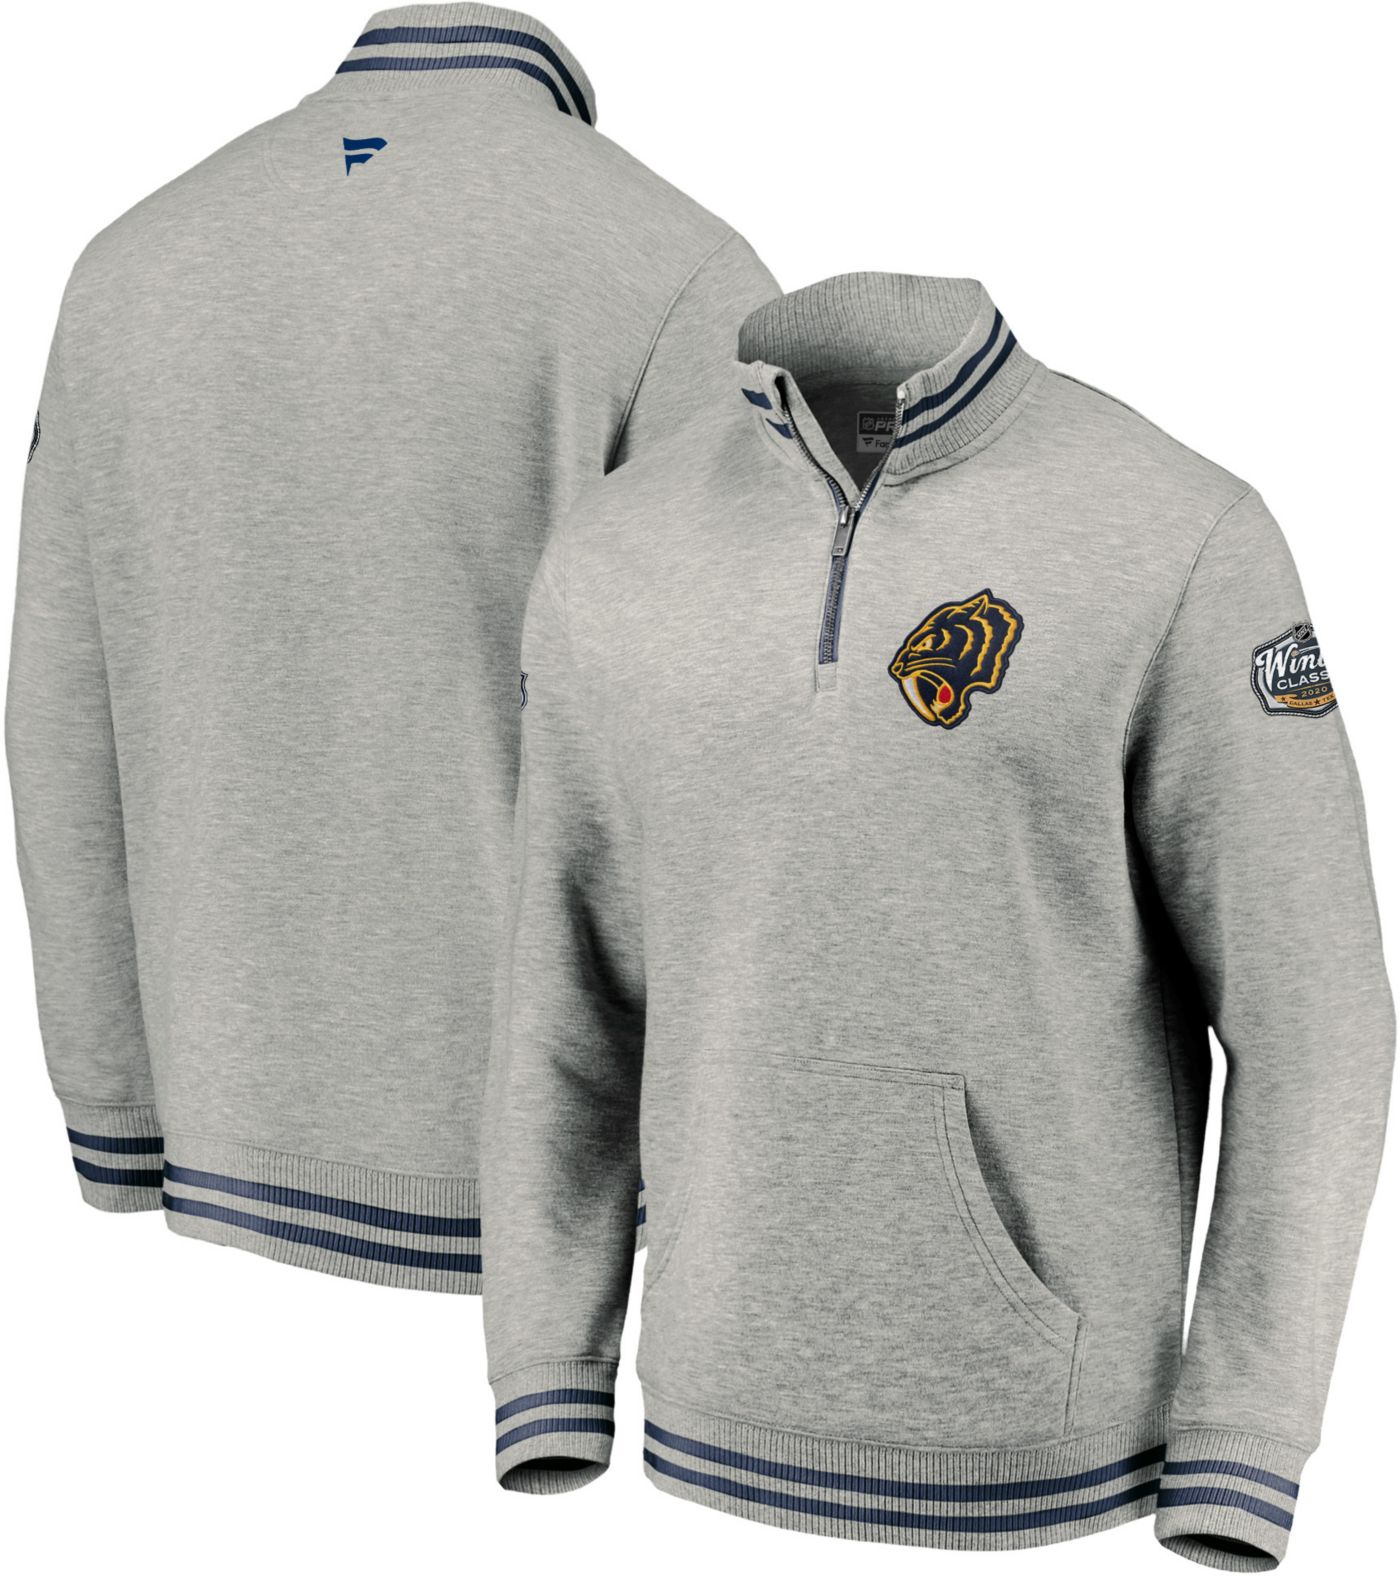 NHL Men's 2020 Winter Classic Nashville Predators Throwback Grey Quarter-Zip Pullover